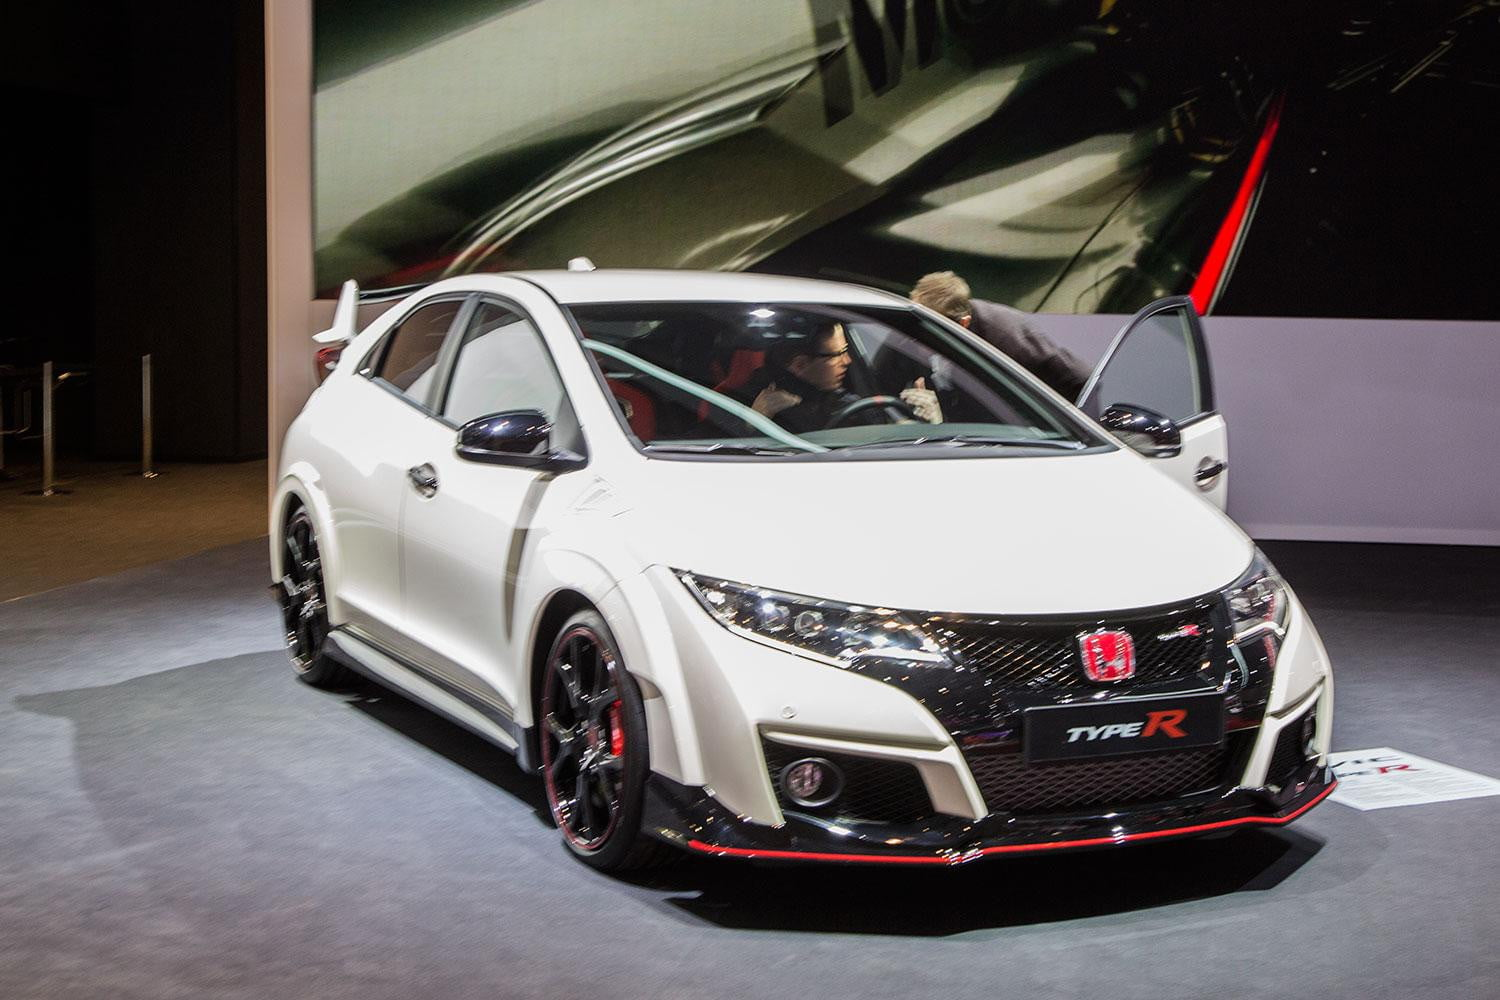 video 2015 civic type r destroys nurburgring lap record. Black Bedroom Furniture Sets. Home Design Ideas